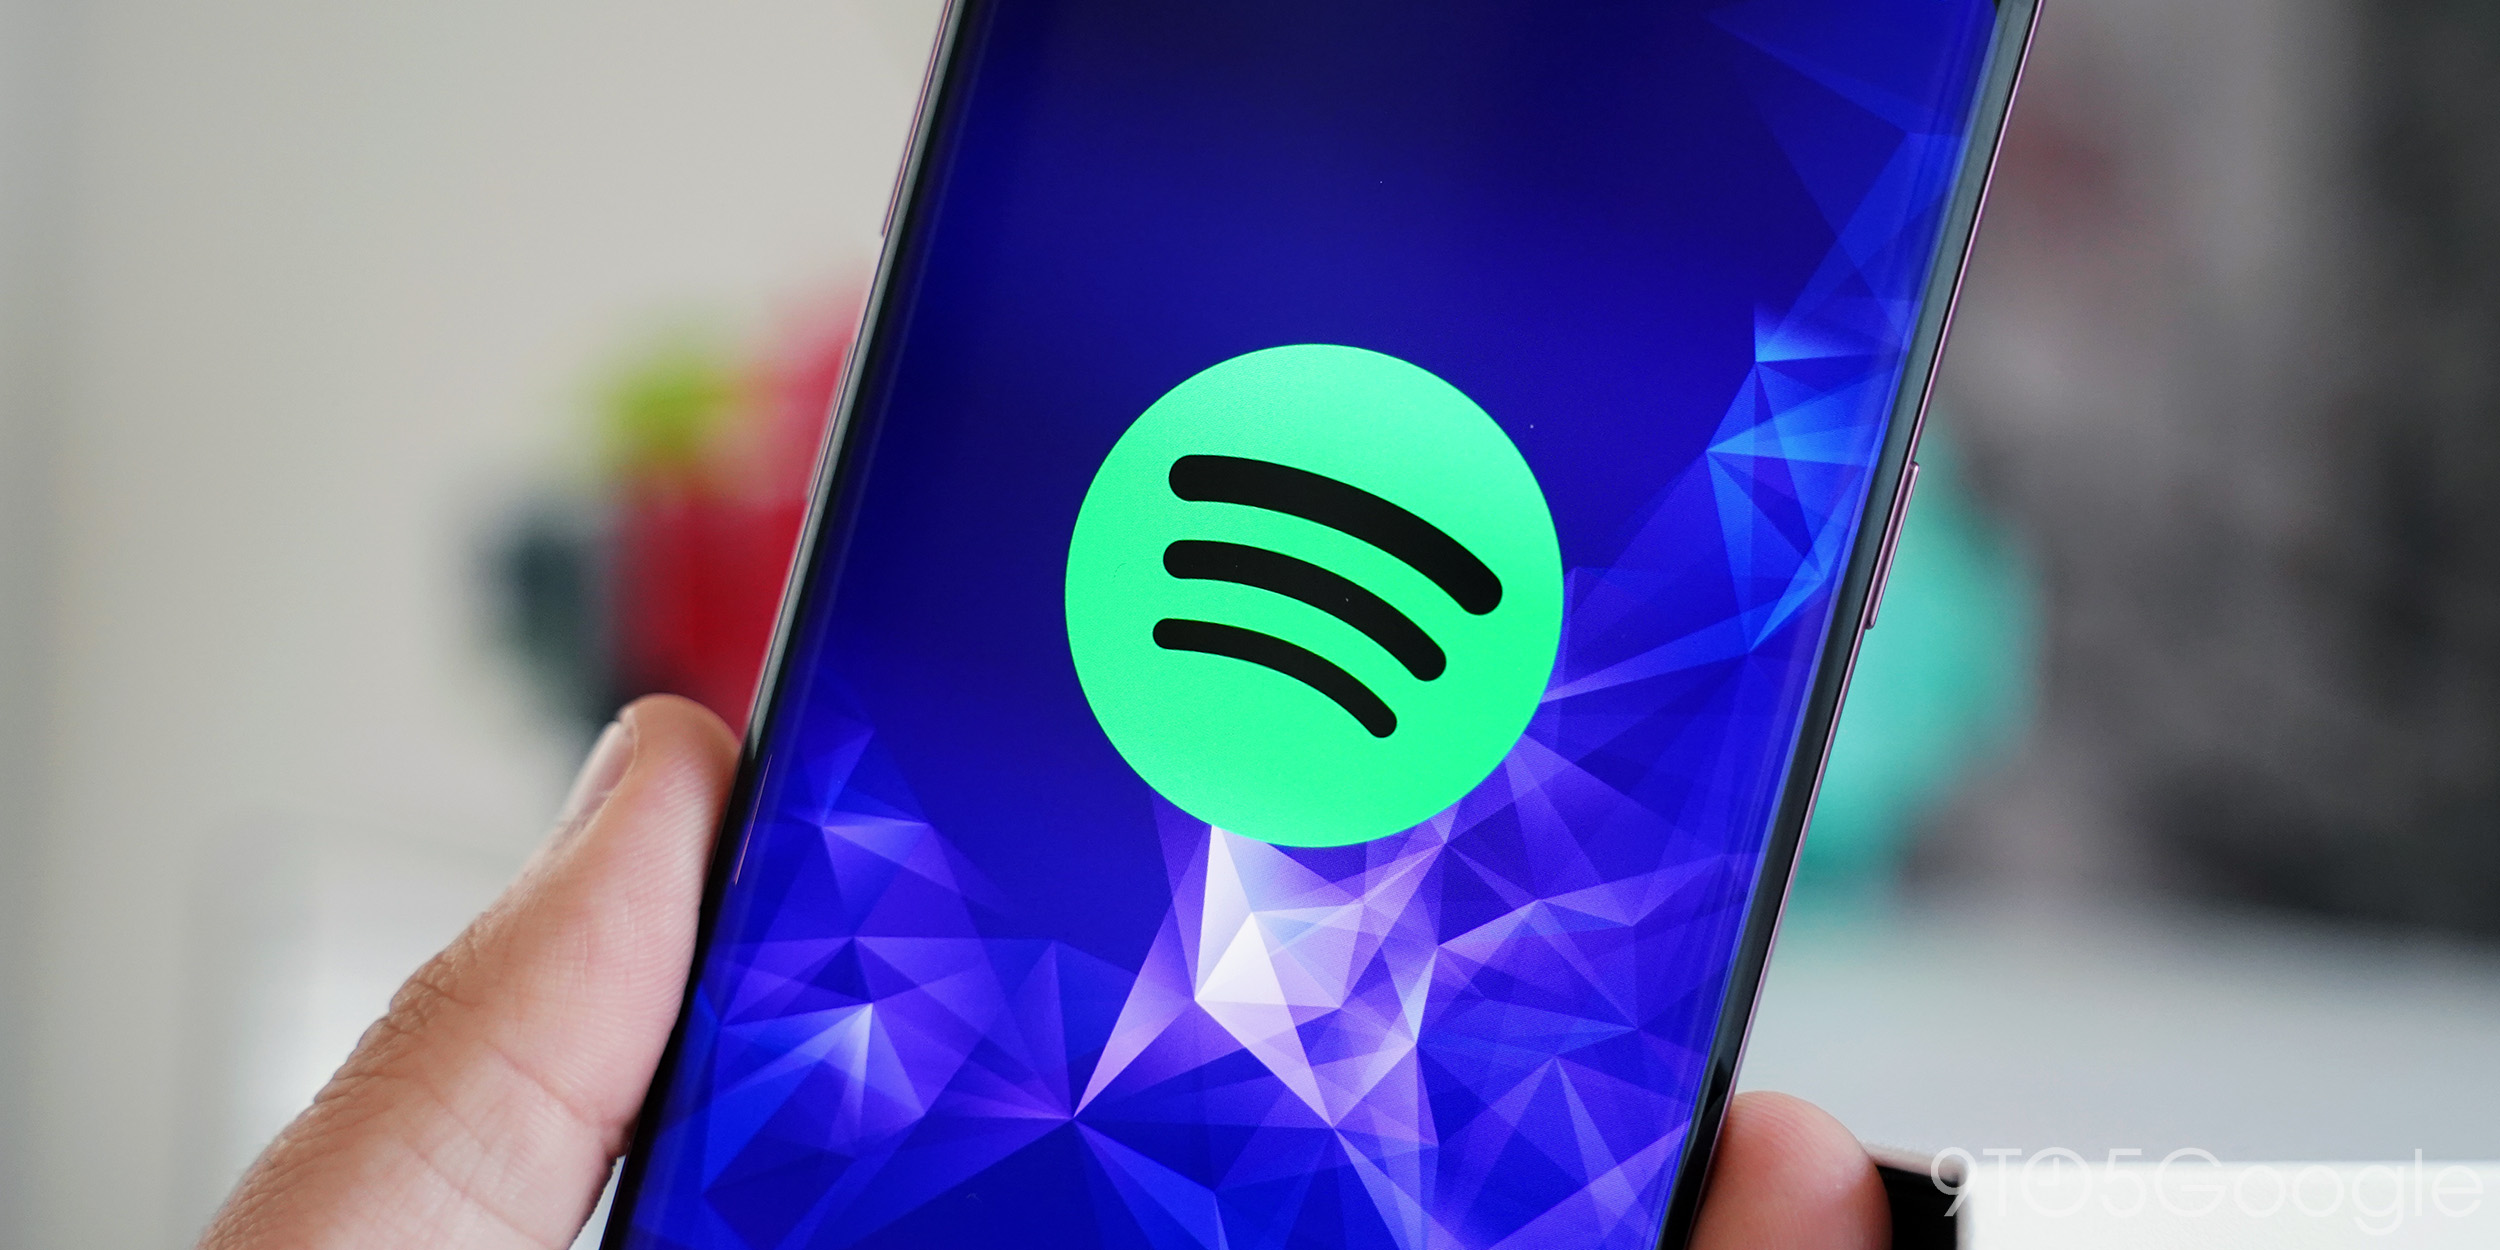 Samsung will pre-install Spotify on your next phone, some devices get 6-months free